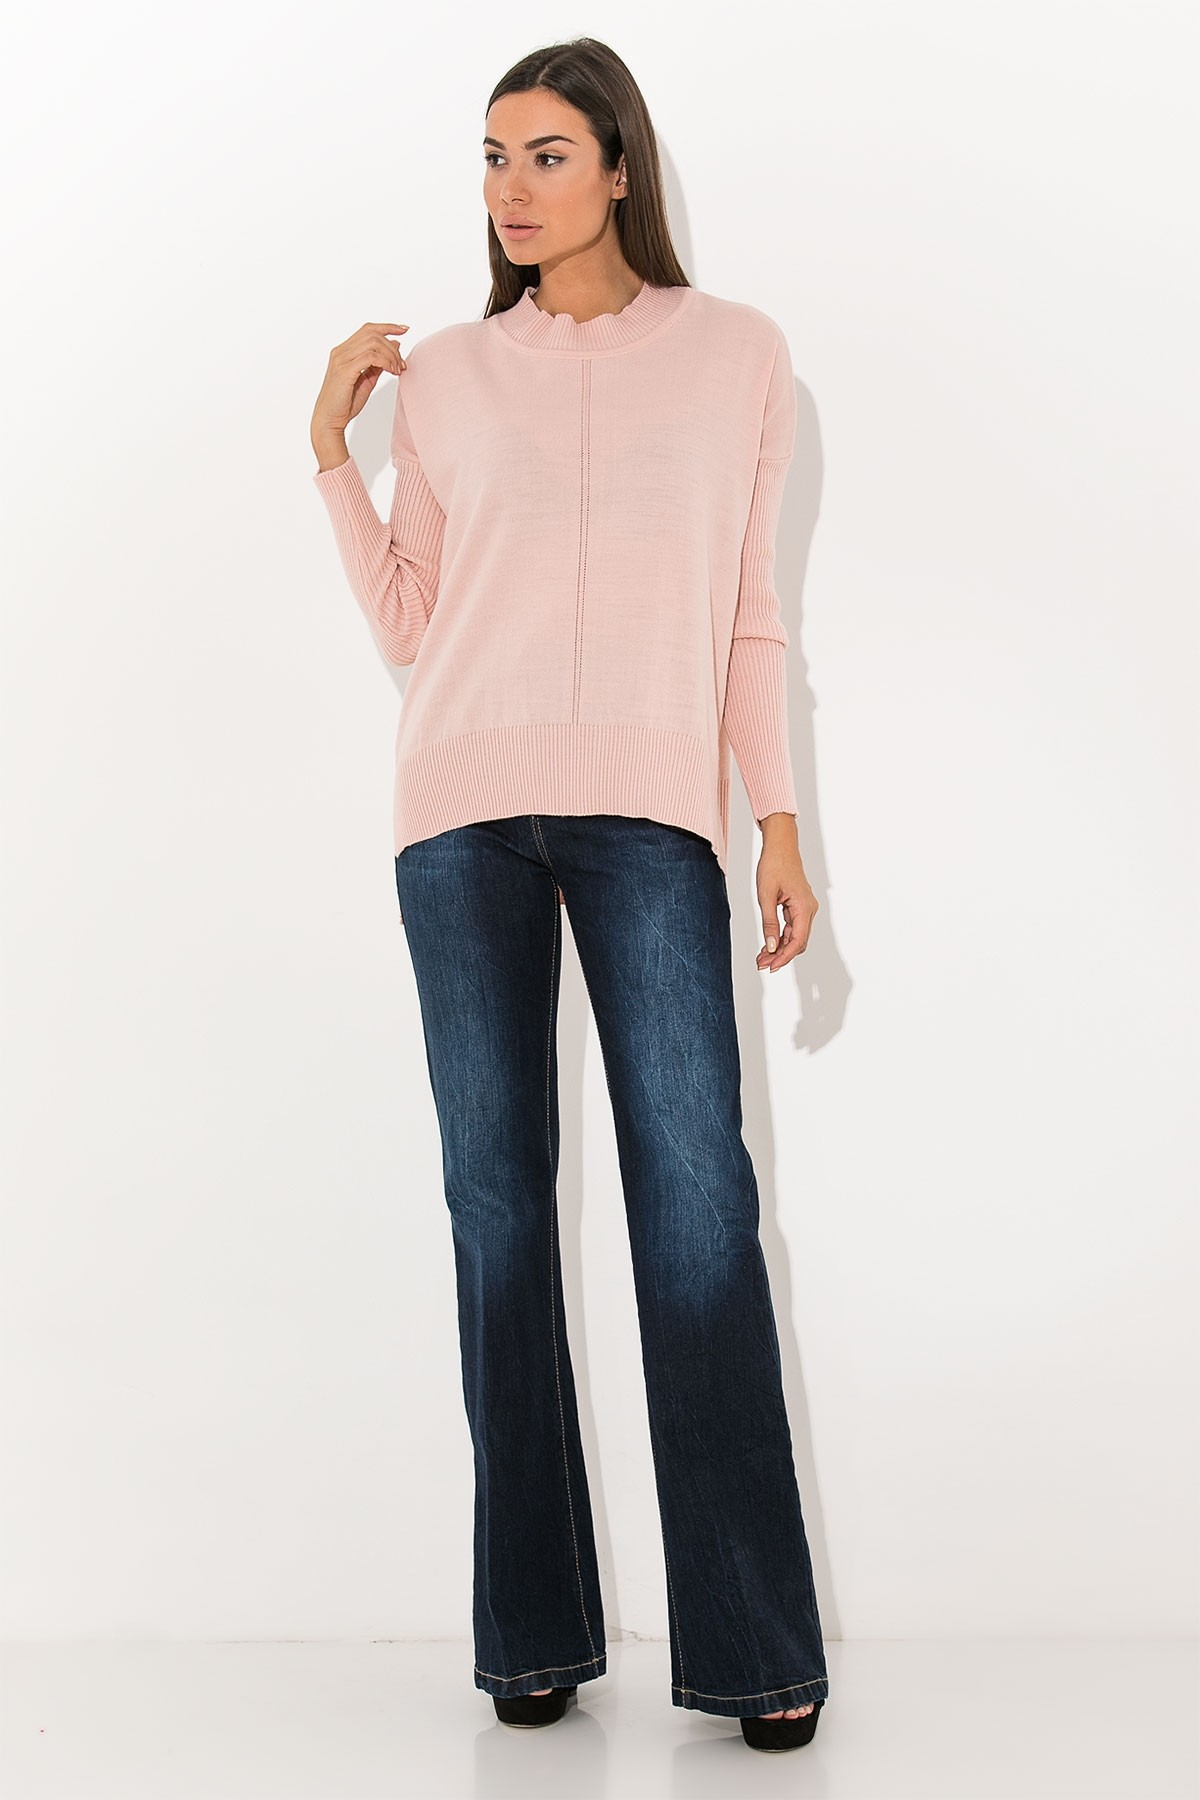 PINK BASIC KNIT TOP